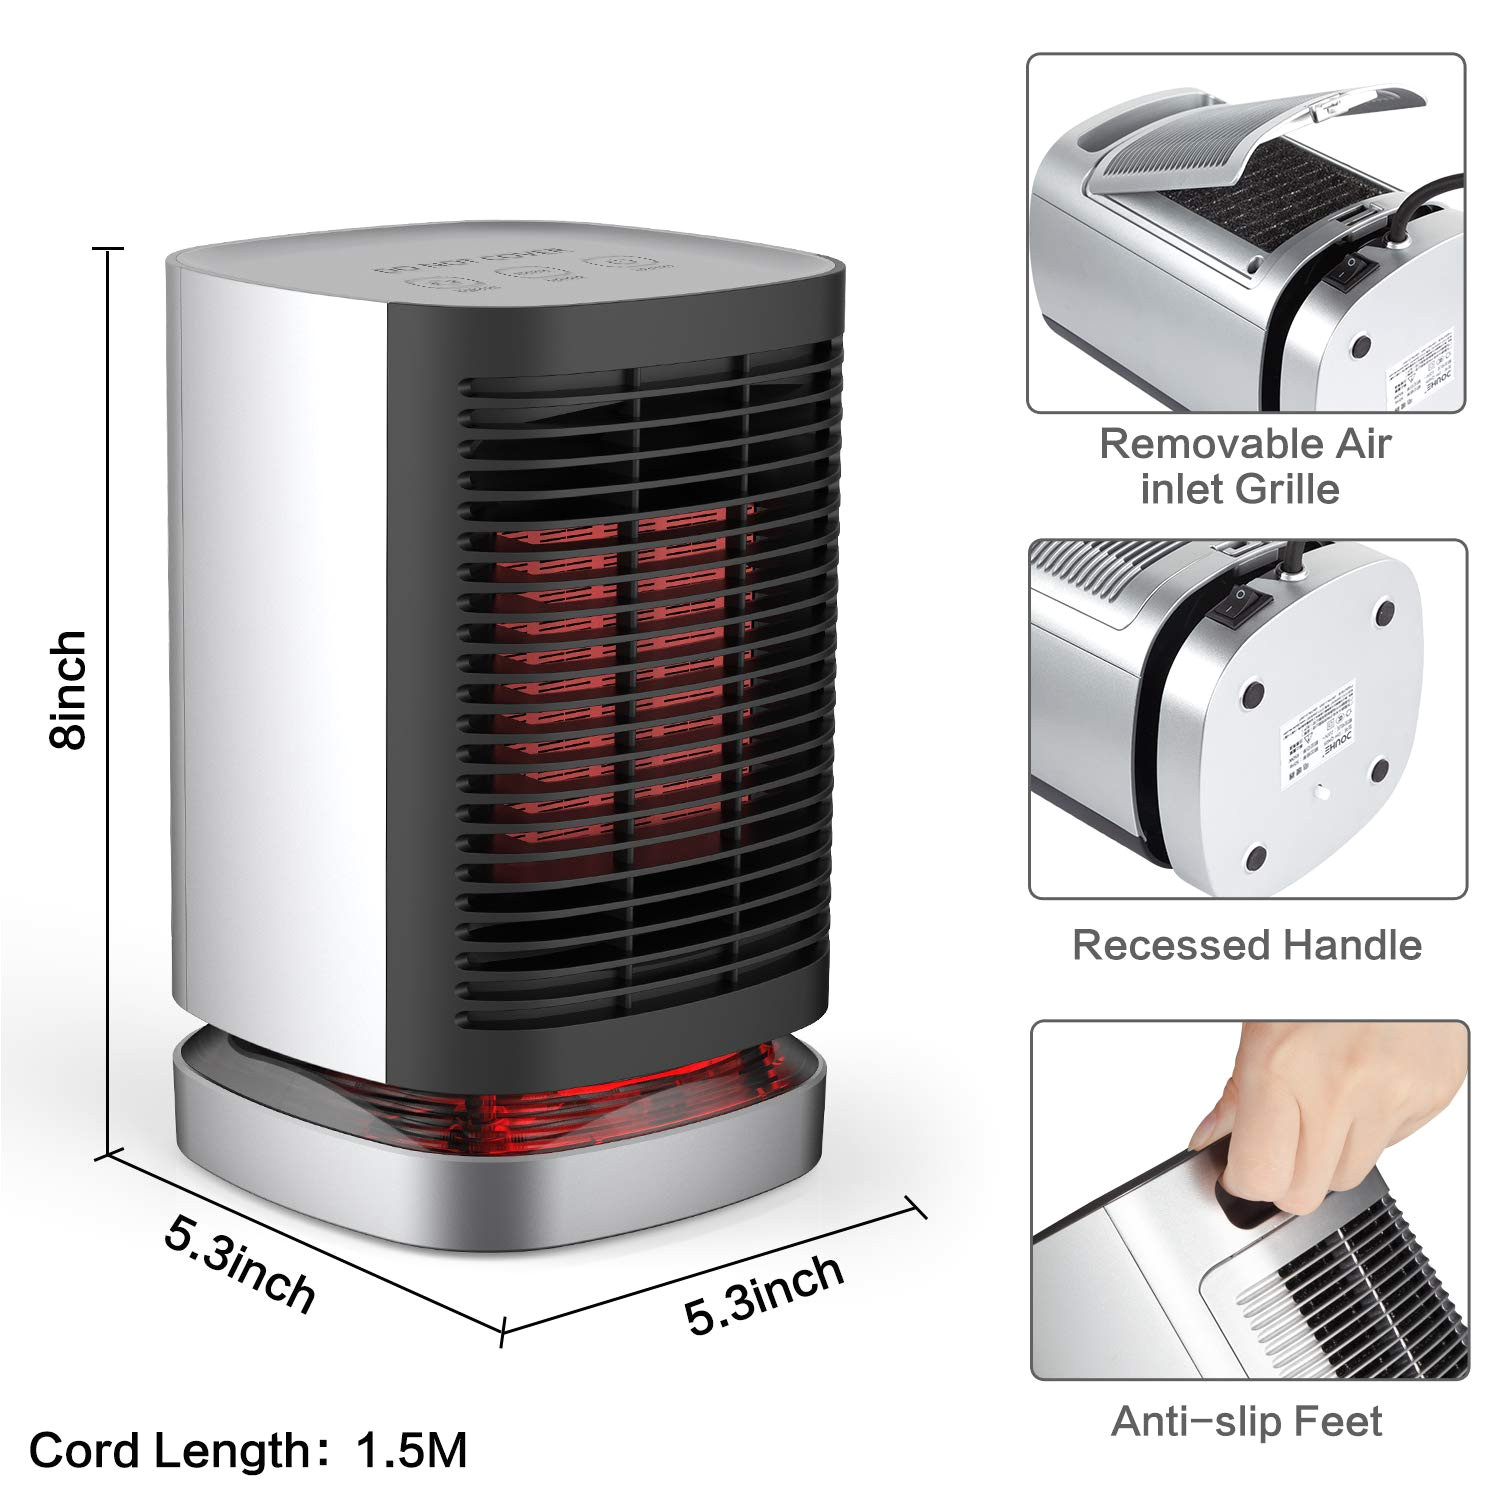 amazon com ailuki portable space heater 950w with oscillating function indoor desk personal heater with tip over and overheating protection ptc electric 2s